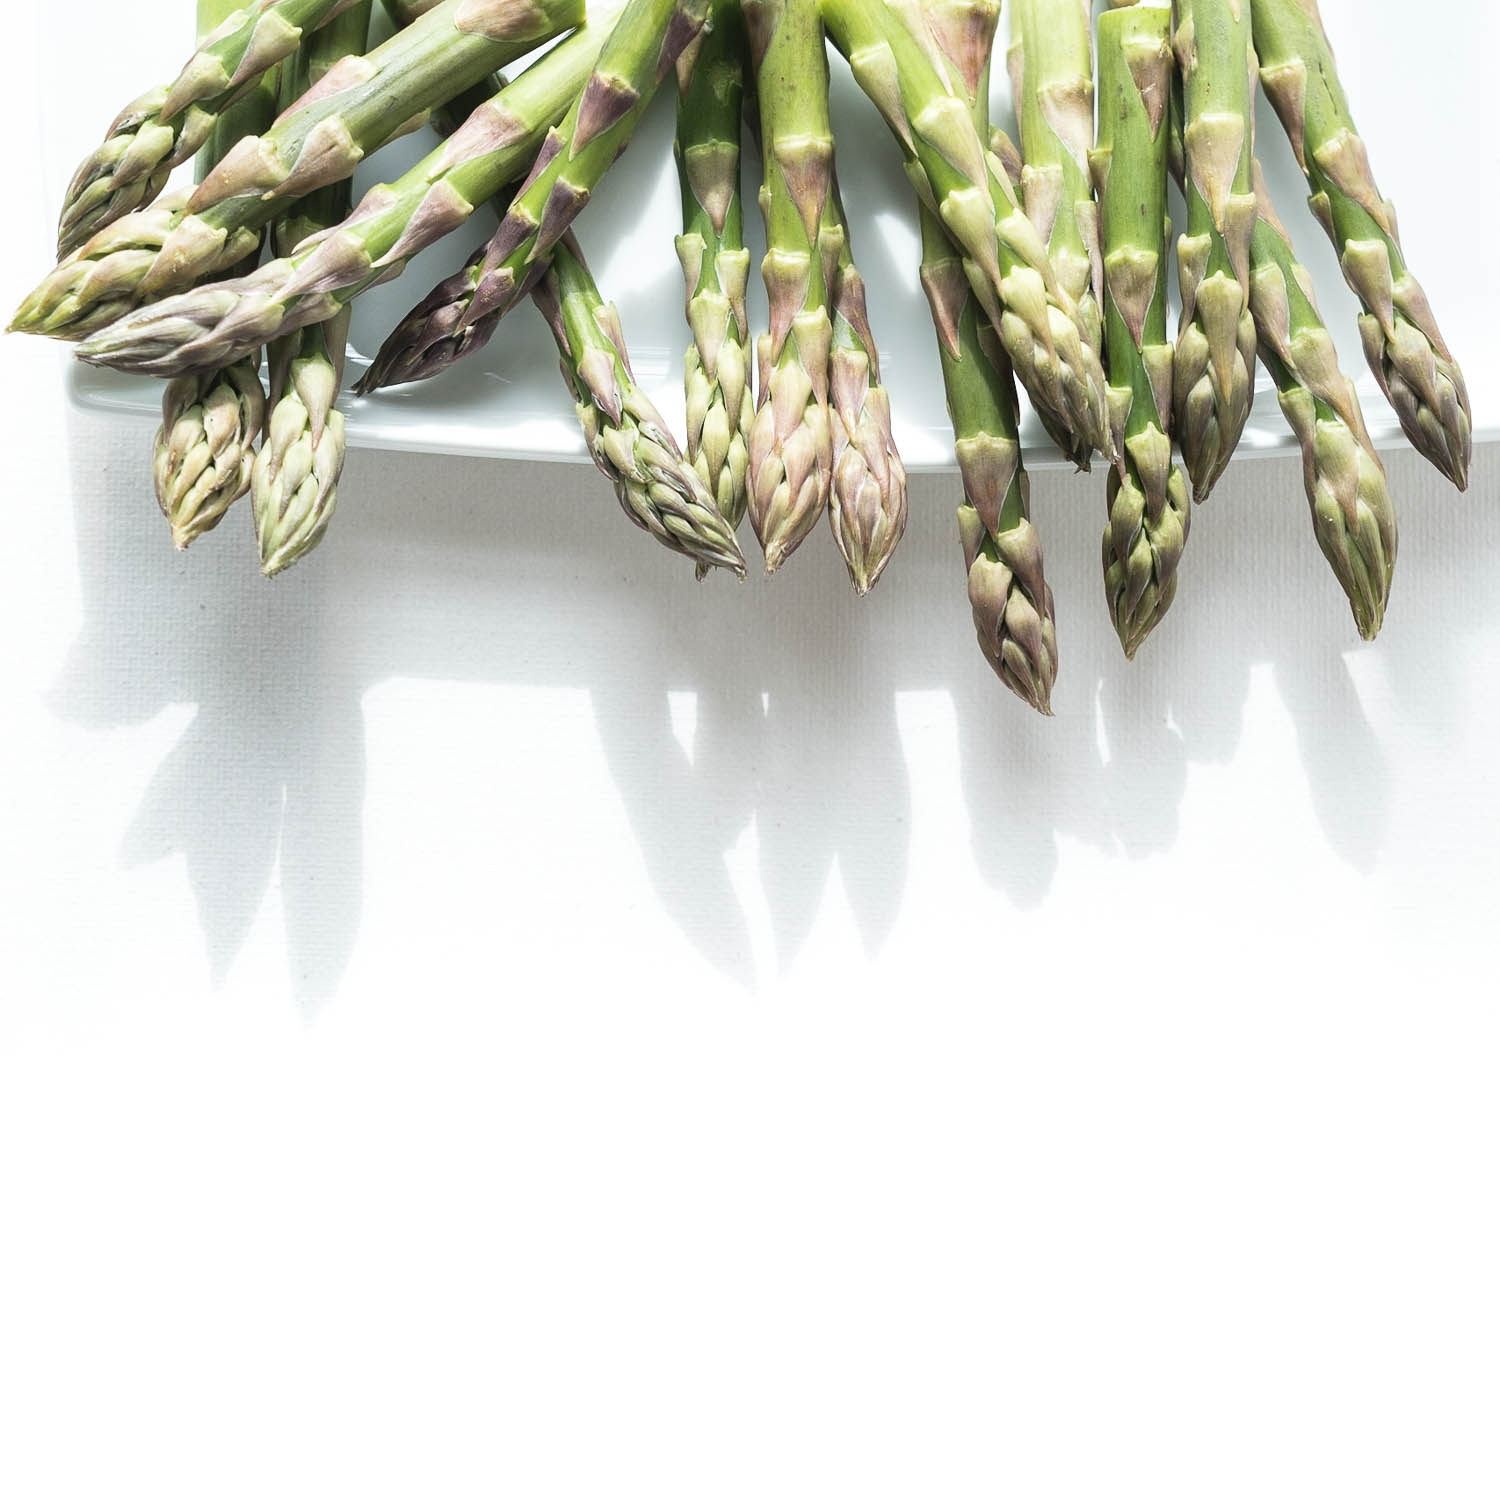 Topping Ideas for Asparagus